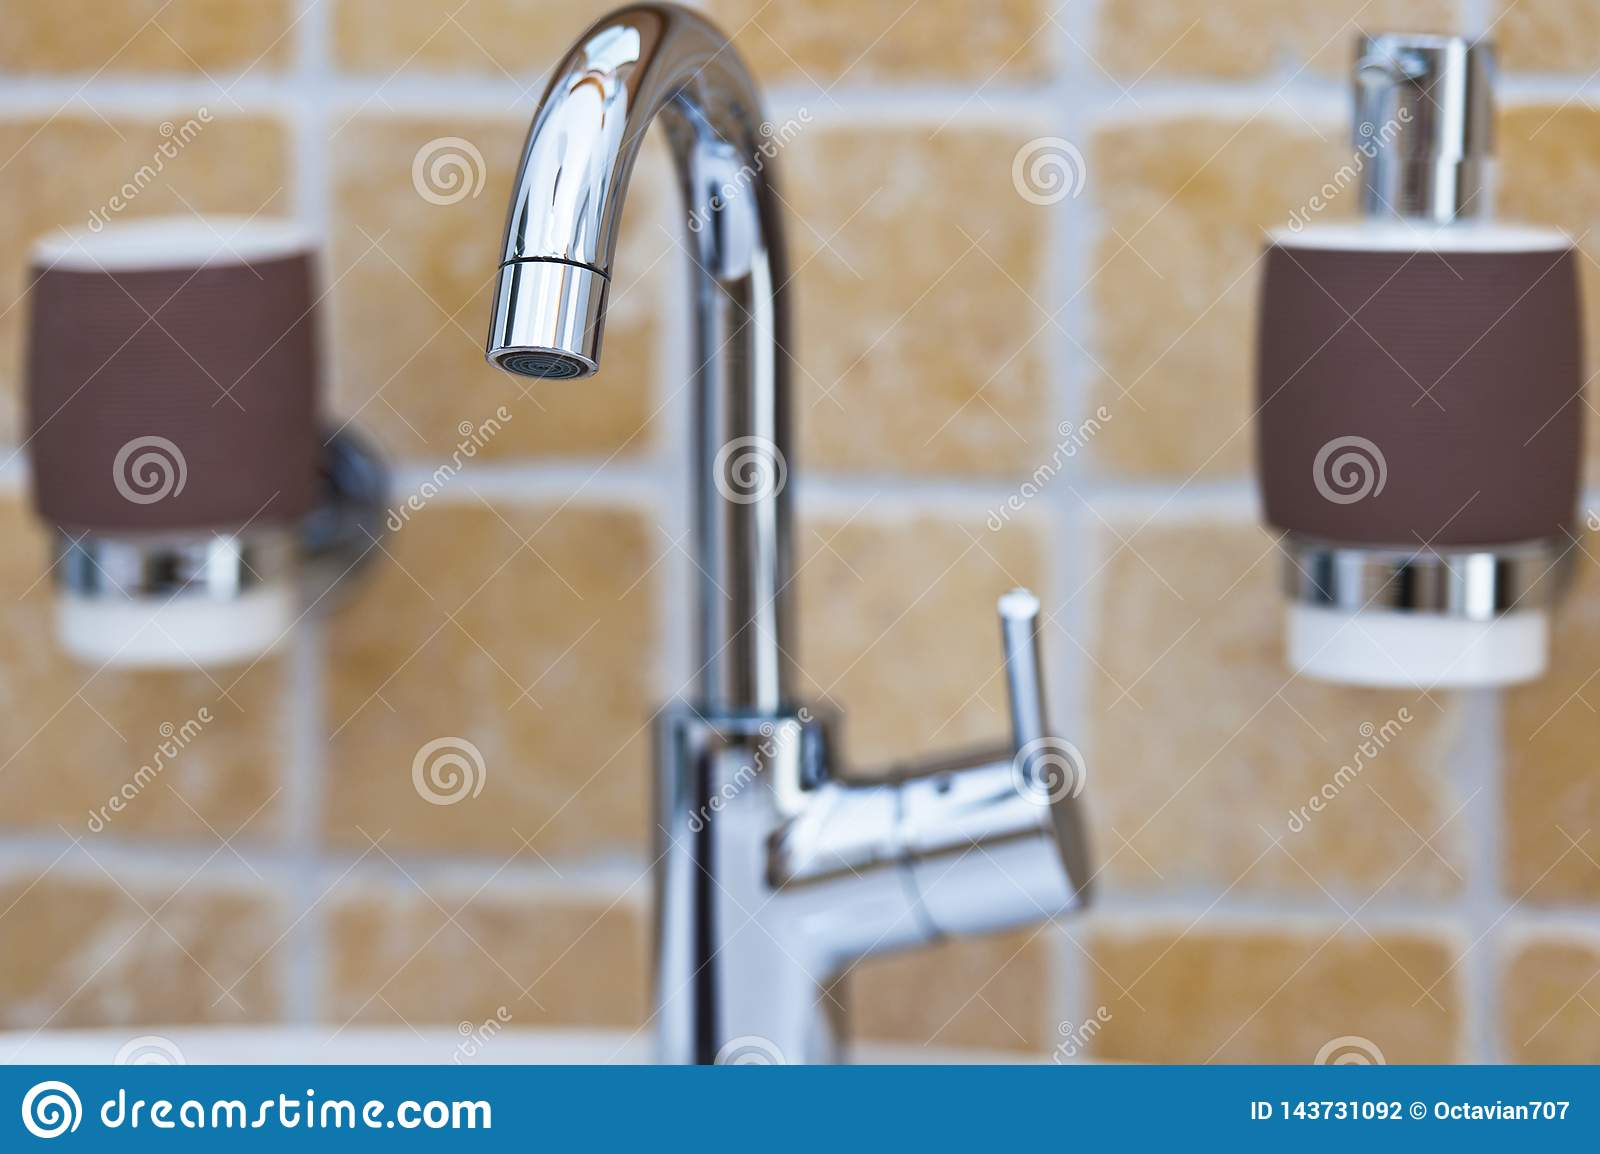 Chrome mixer tap in bathroom